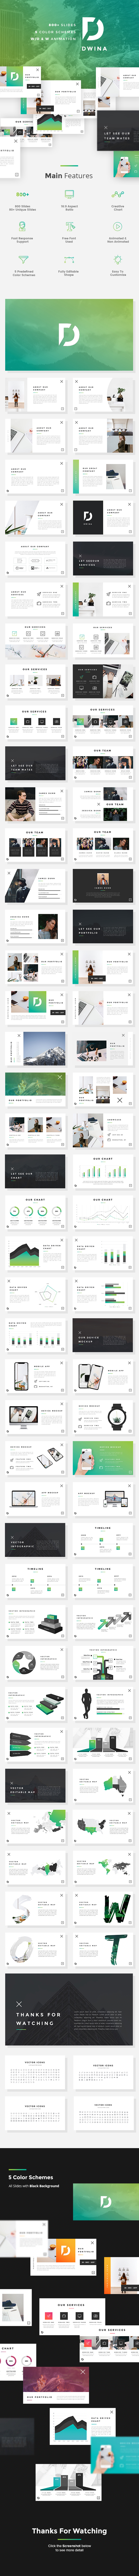 Dwina - Pitch Deck Keynote Template - Keynote Templates Presentation Templates